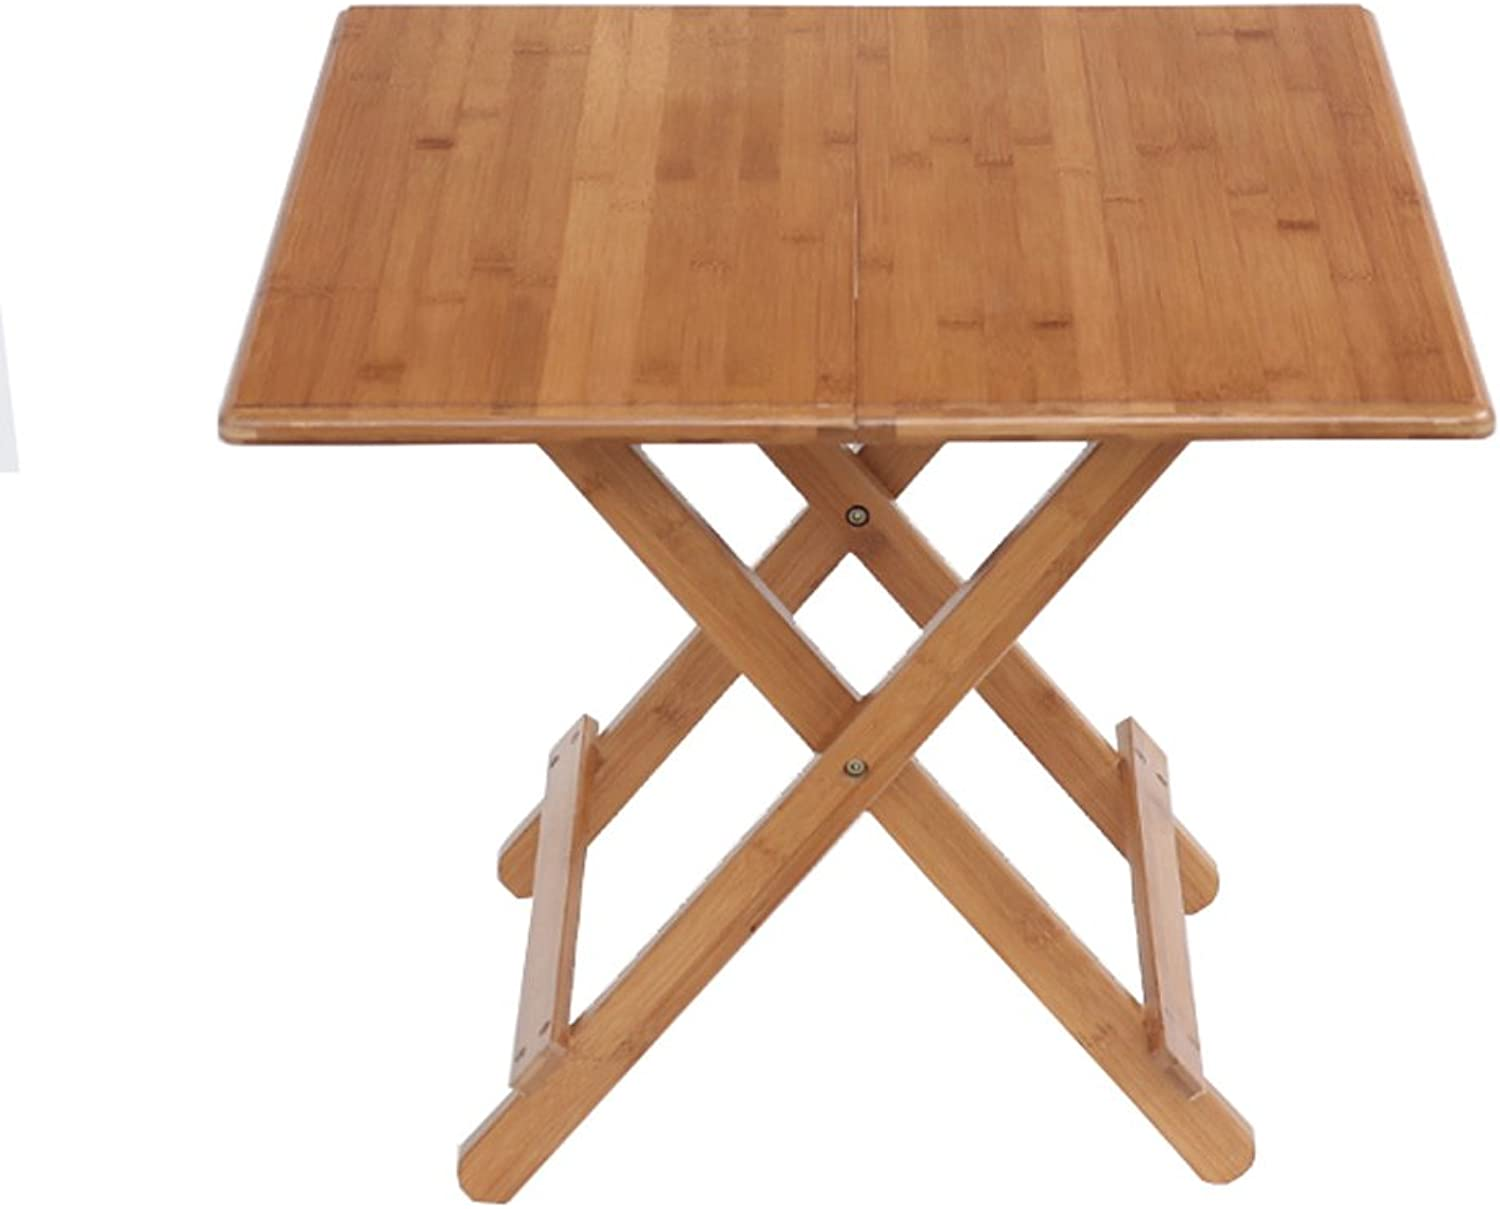 Folding Table Household Dining Table Portability Table Multifunction Bamboo Table Study Table Leisure Table (Size   60  60  50CM)